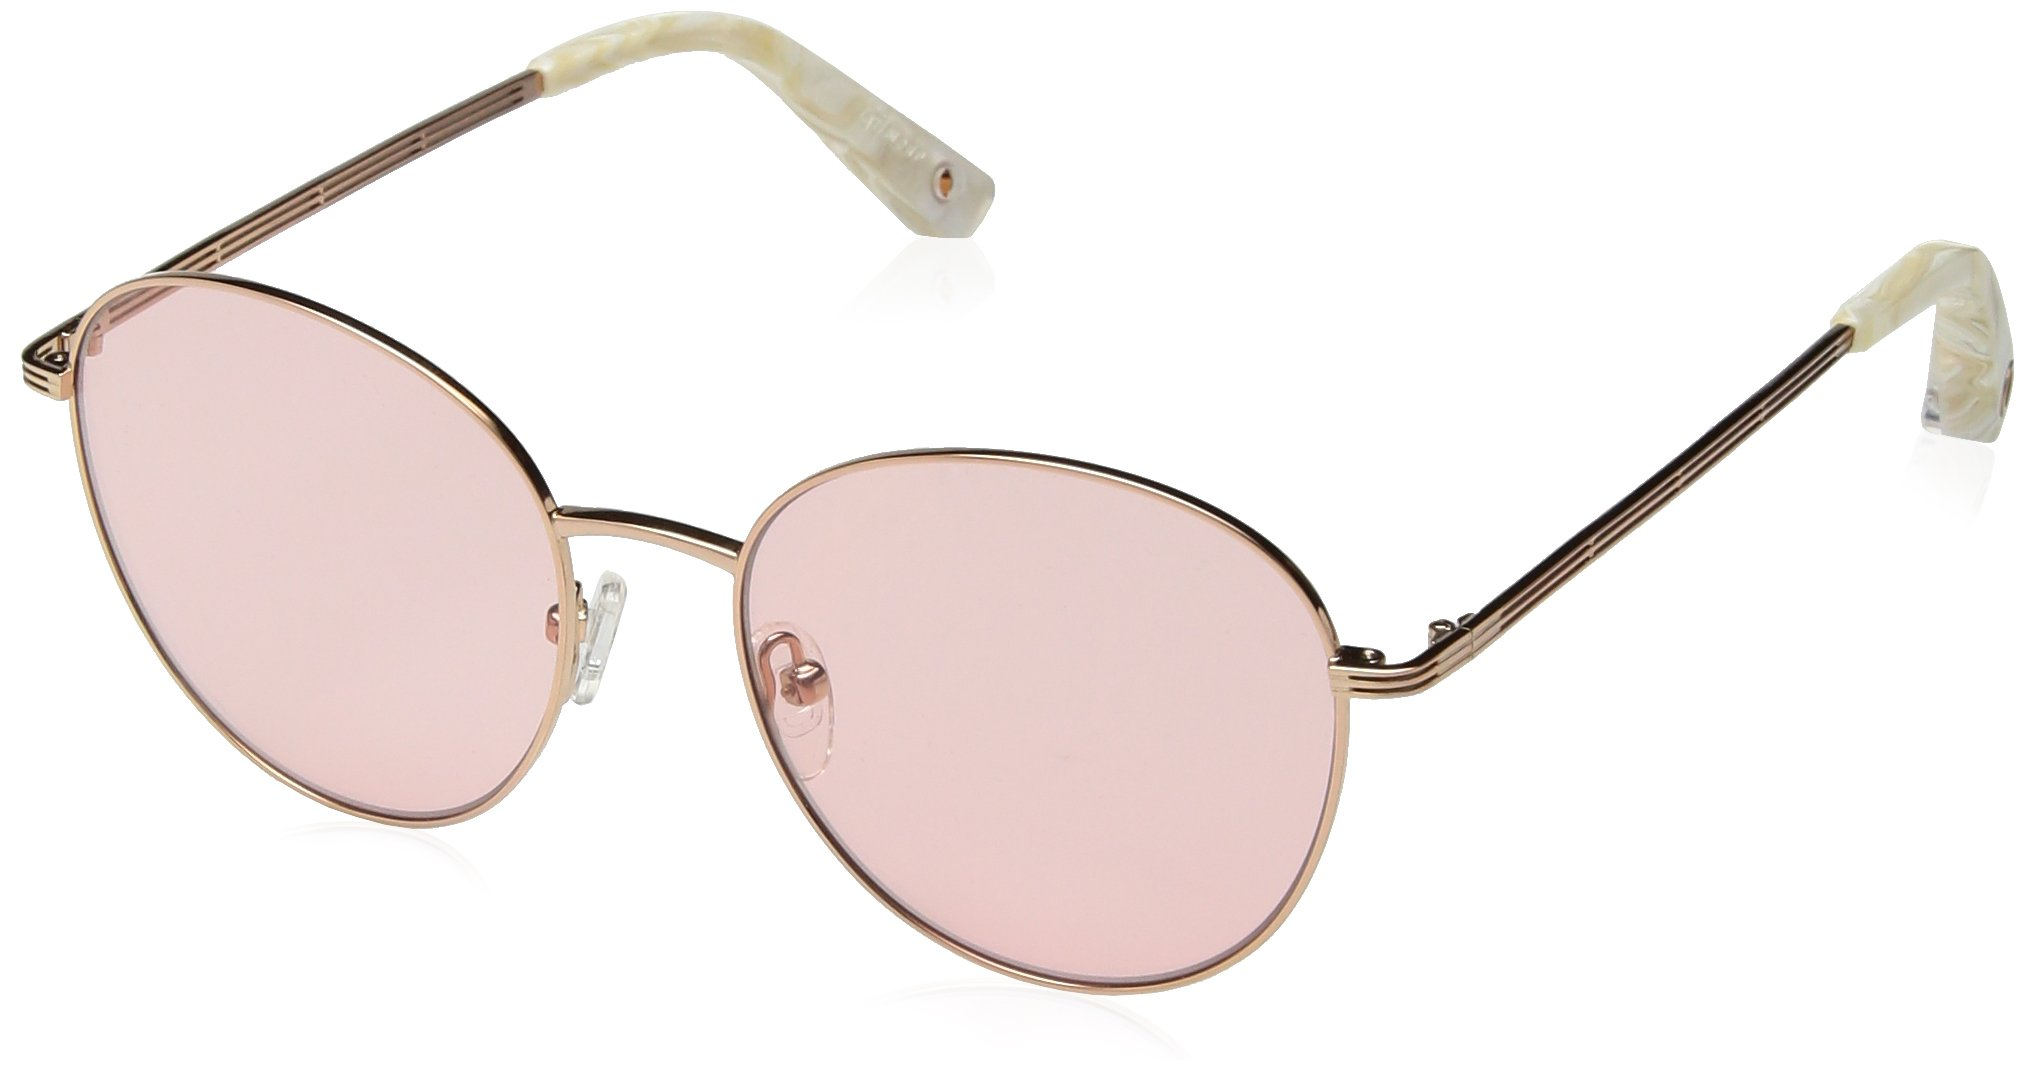 Elizabeth and James Women's Gilmour Round Sunglasses, Rose Gold, 53 mm